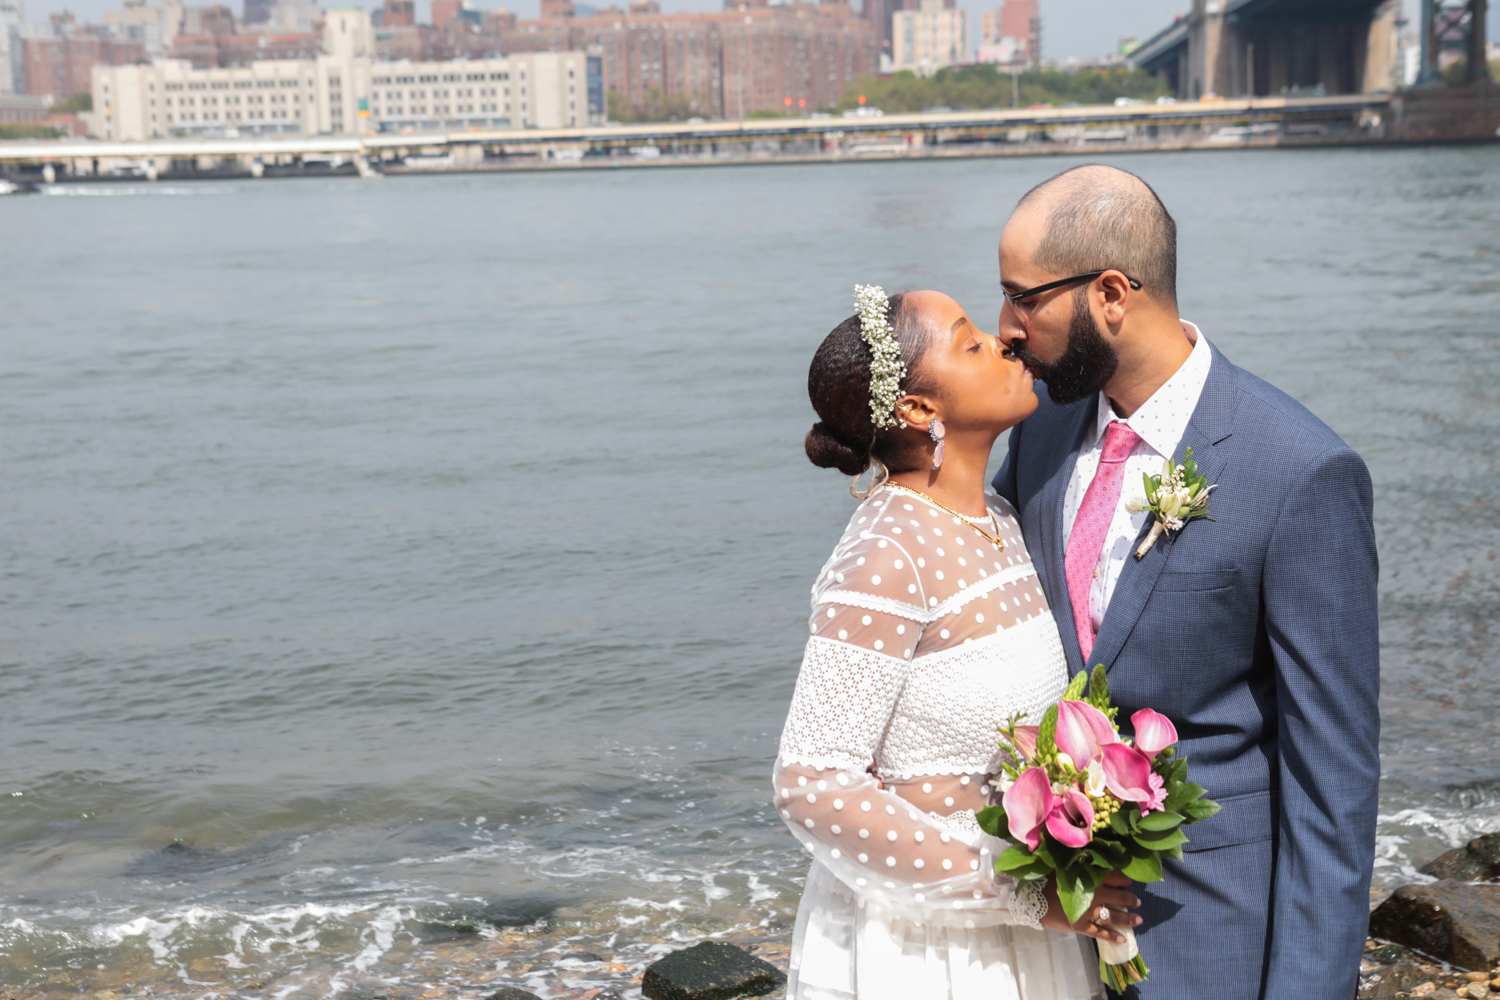 The bride and groom kiss in Brooklyn Bridge Park after their wedding ceremony.